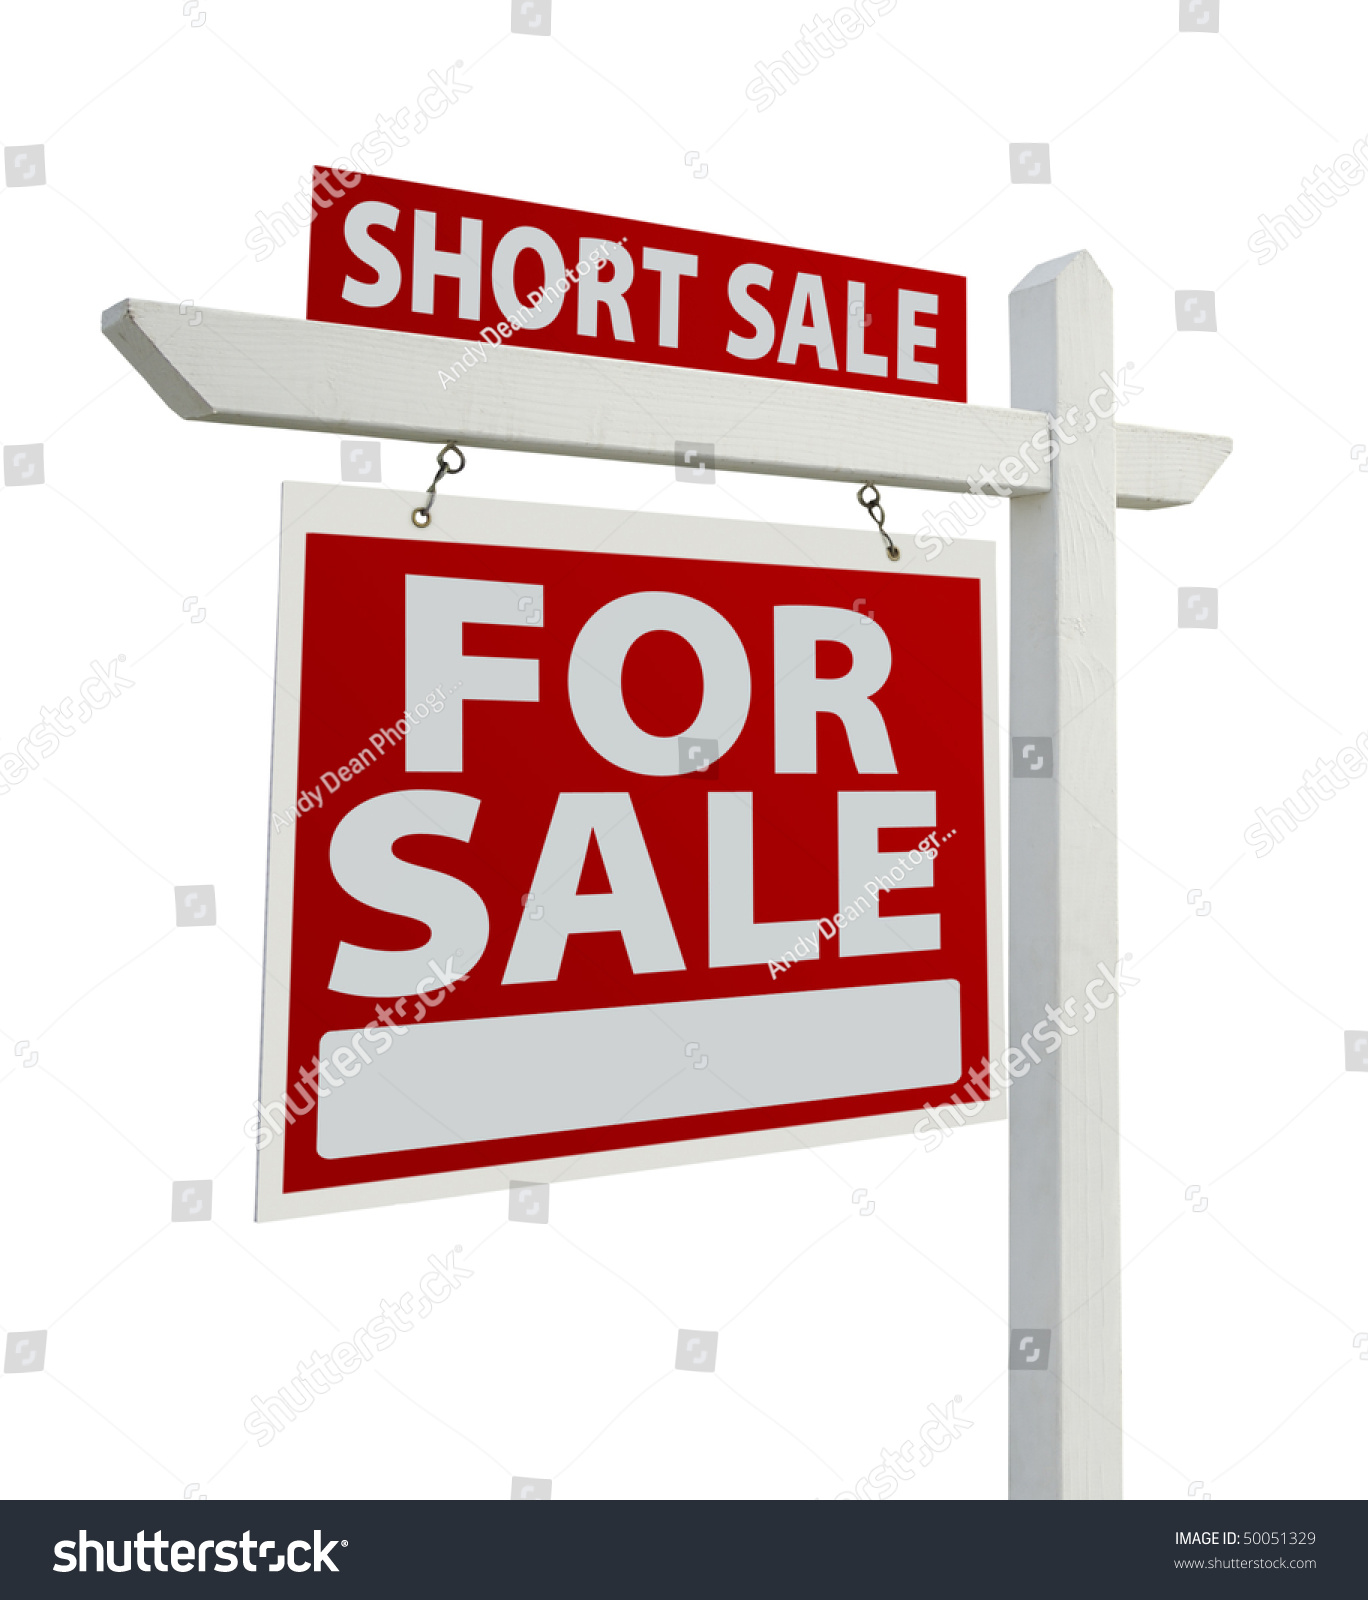 Short Sale Home For Sale Real Estate Sign Isolated On A